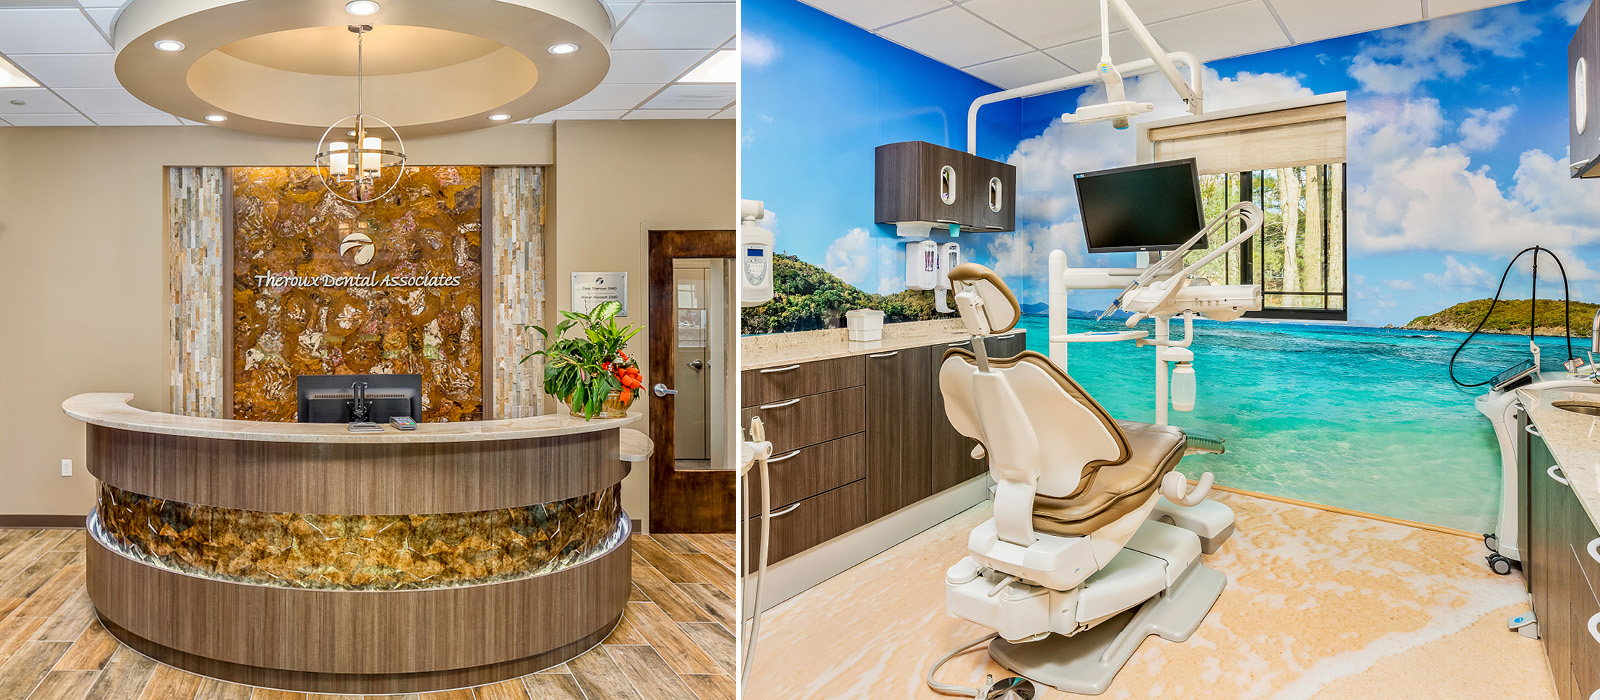 Theroux Dental beach-themed treatment area